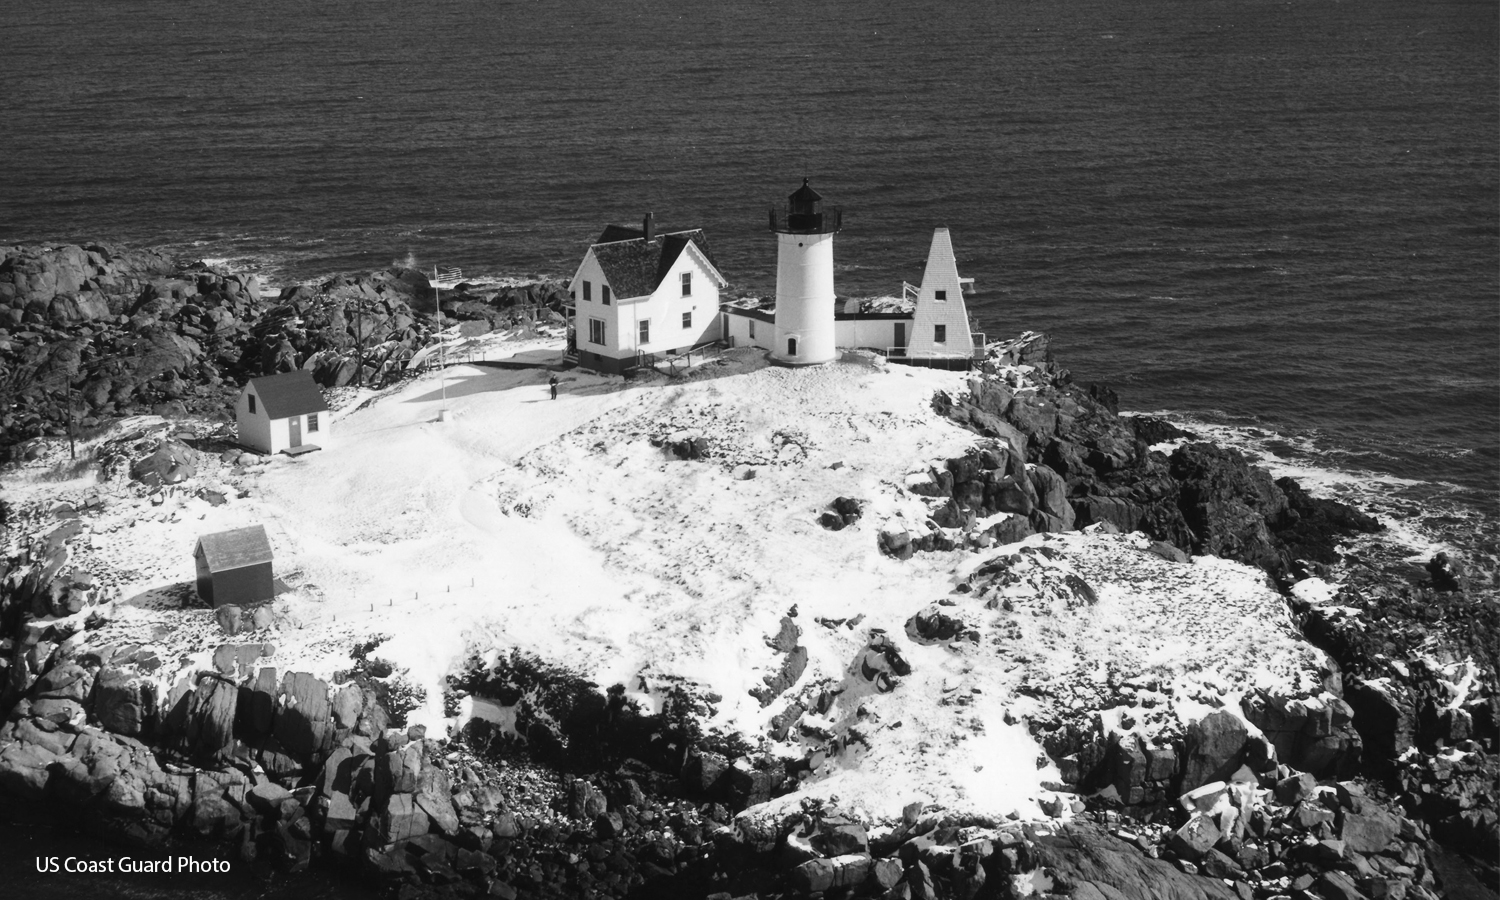 Cape Neddick Lighthouse